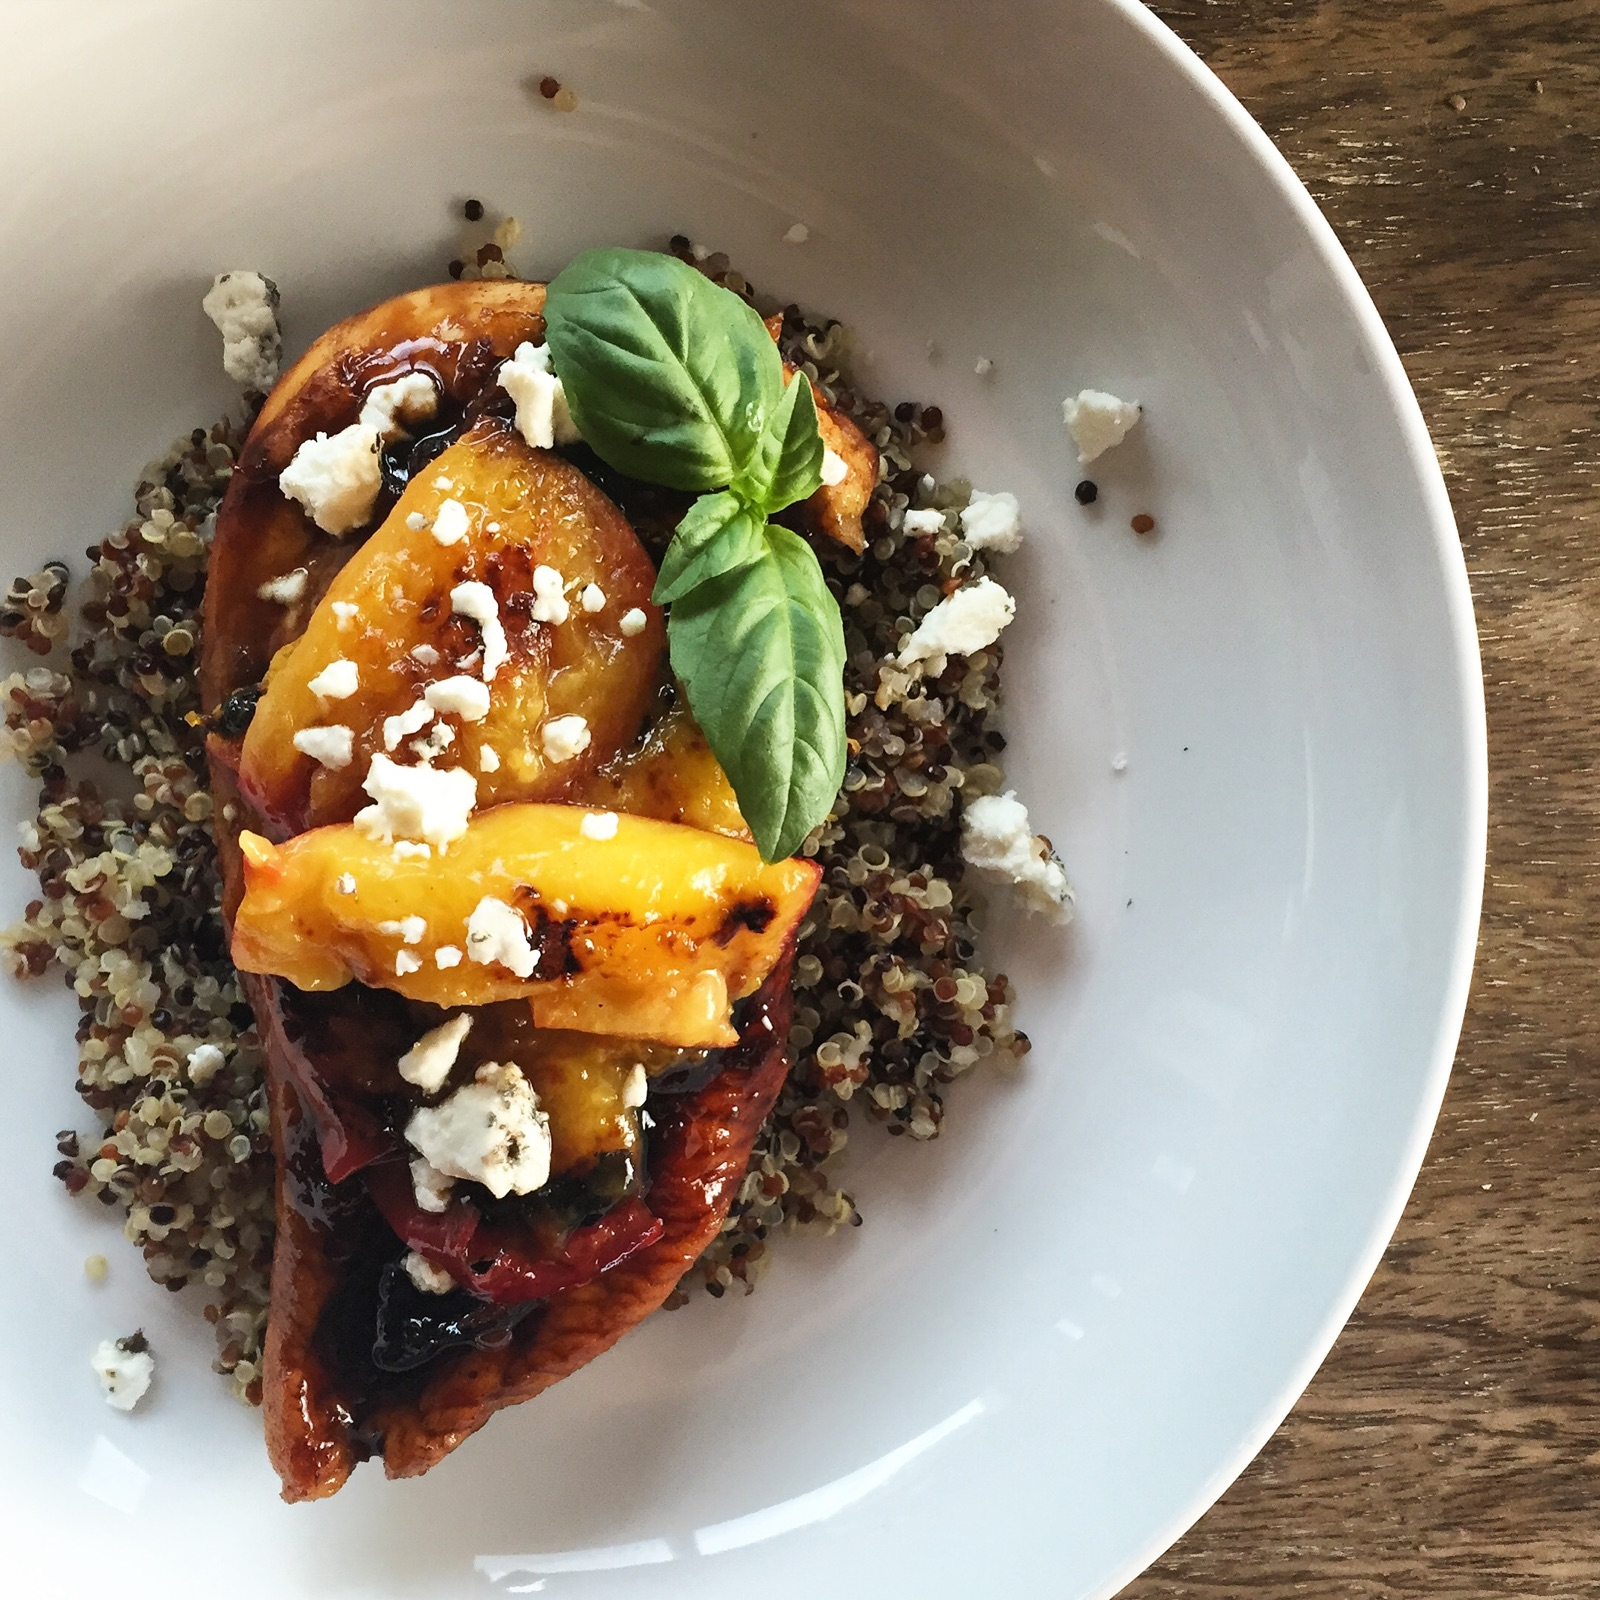 Citrus-Balsamic Chicken with Nectarines, Basil & Goat Cheese